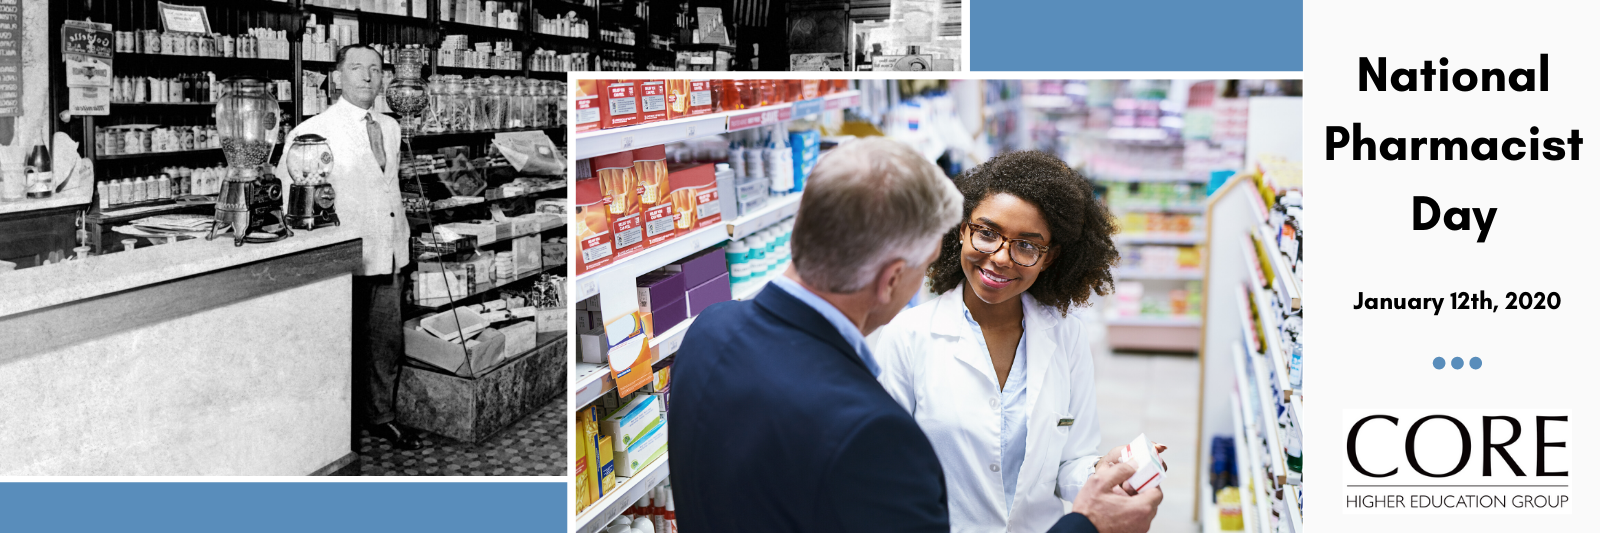 Happy National Pharmacist Day! (5).png